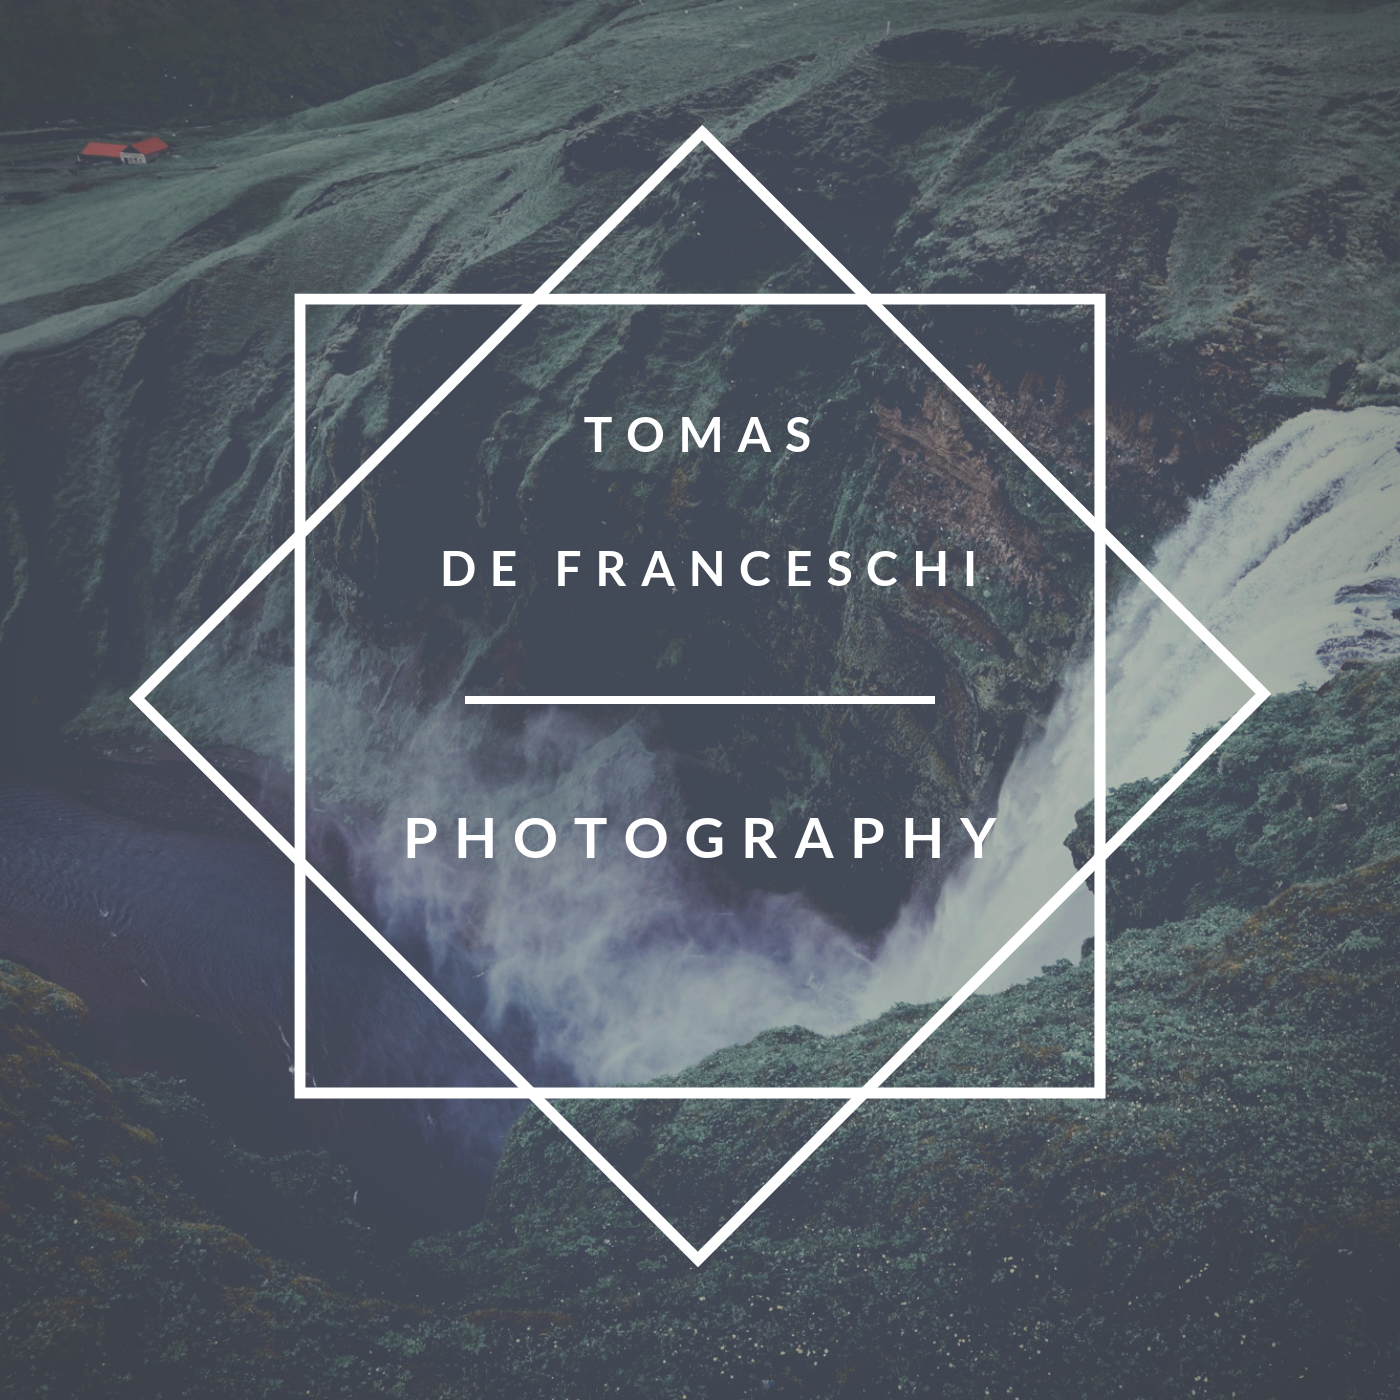 tomas de franceschi photography profile photo